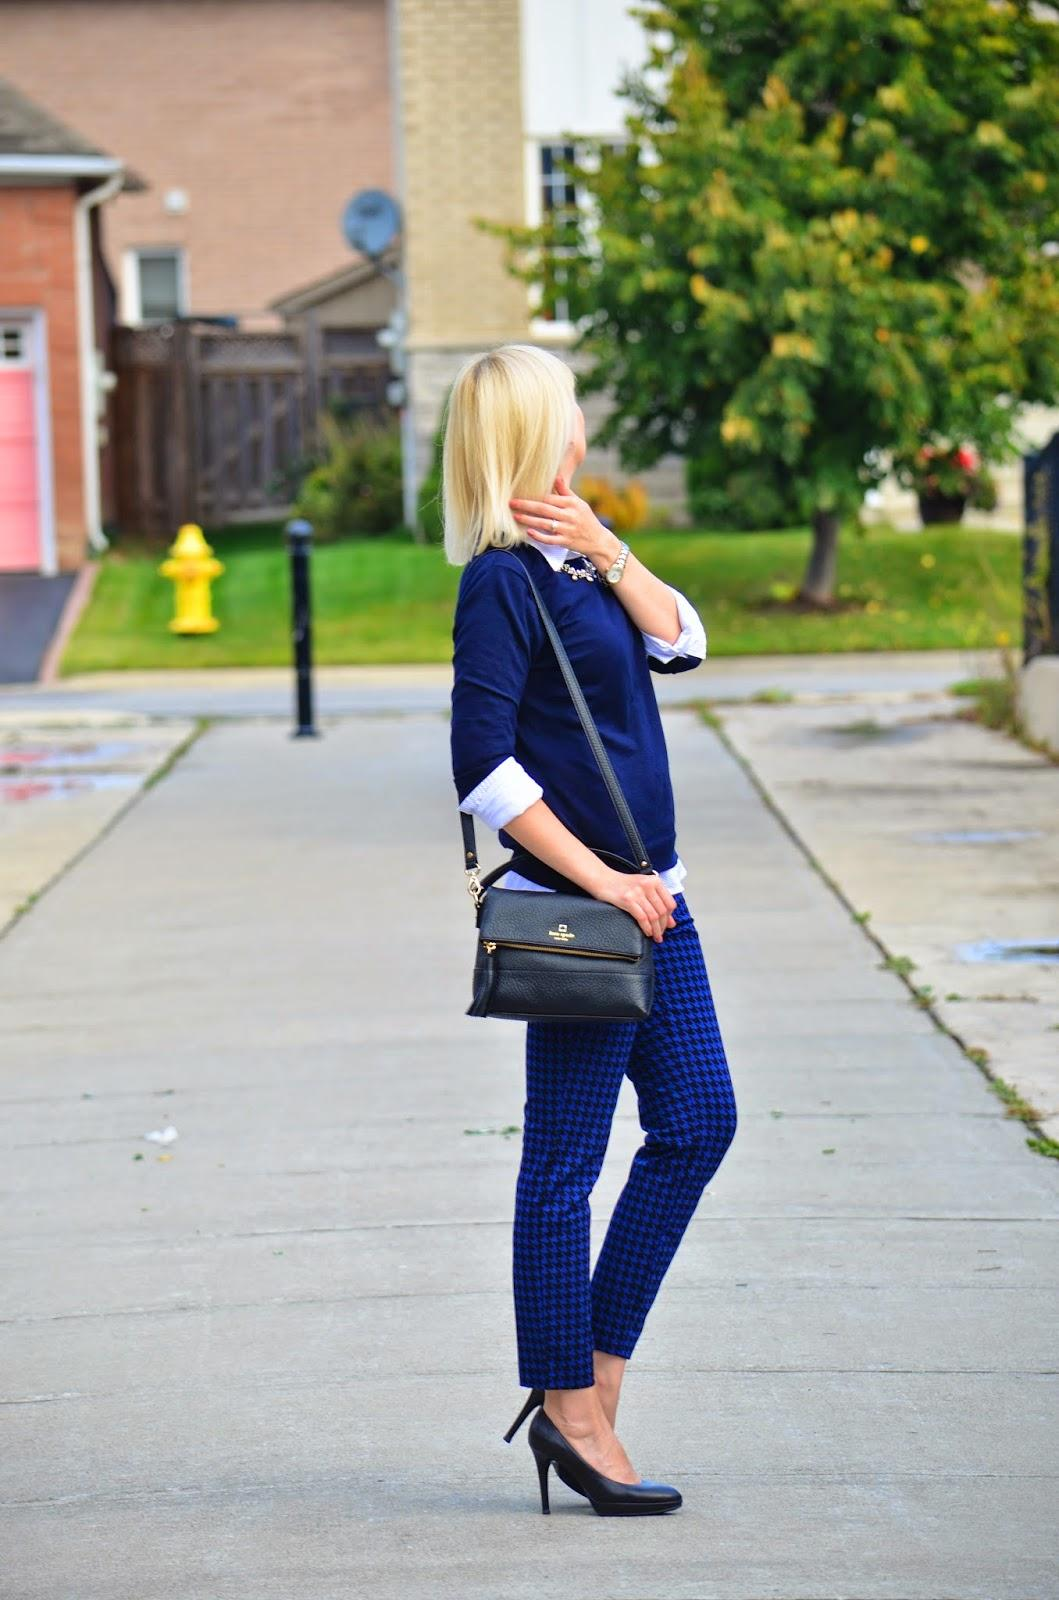 Style, OOTD, Tommy Hilfiger, Old Navy, J. Crew factory, J. Crew style, j. Crew, Kate Spade, Kate Spade bag, Houndstooth pants, Houndstooth, blue outfit,